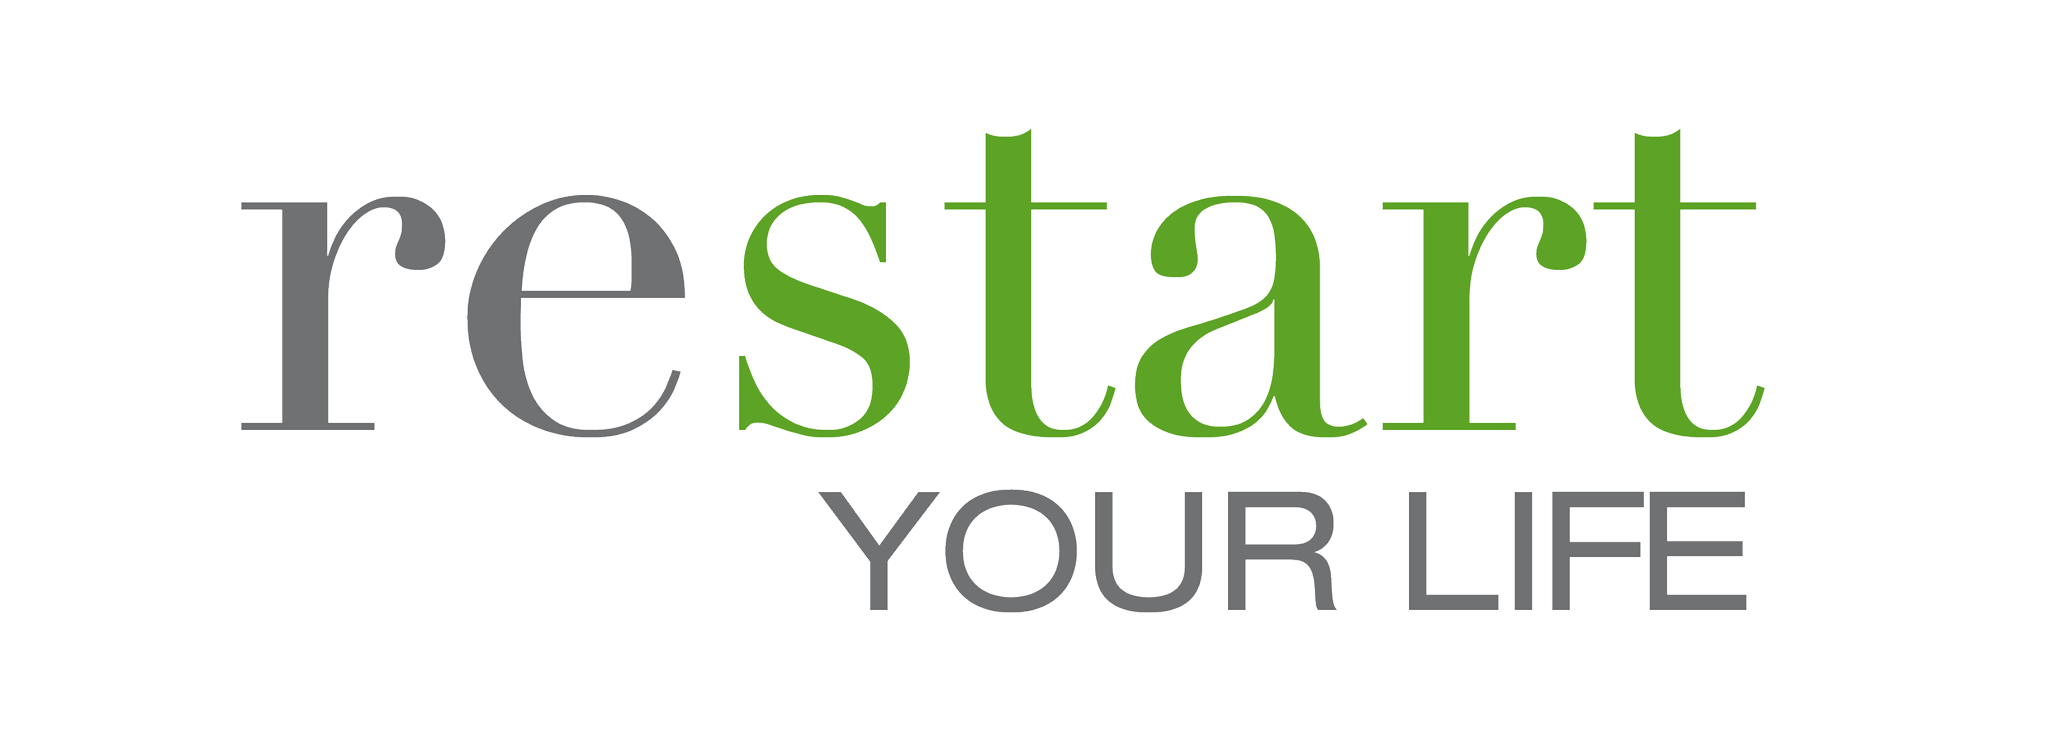 restart your life - Dein Lifestyle Konzept